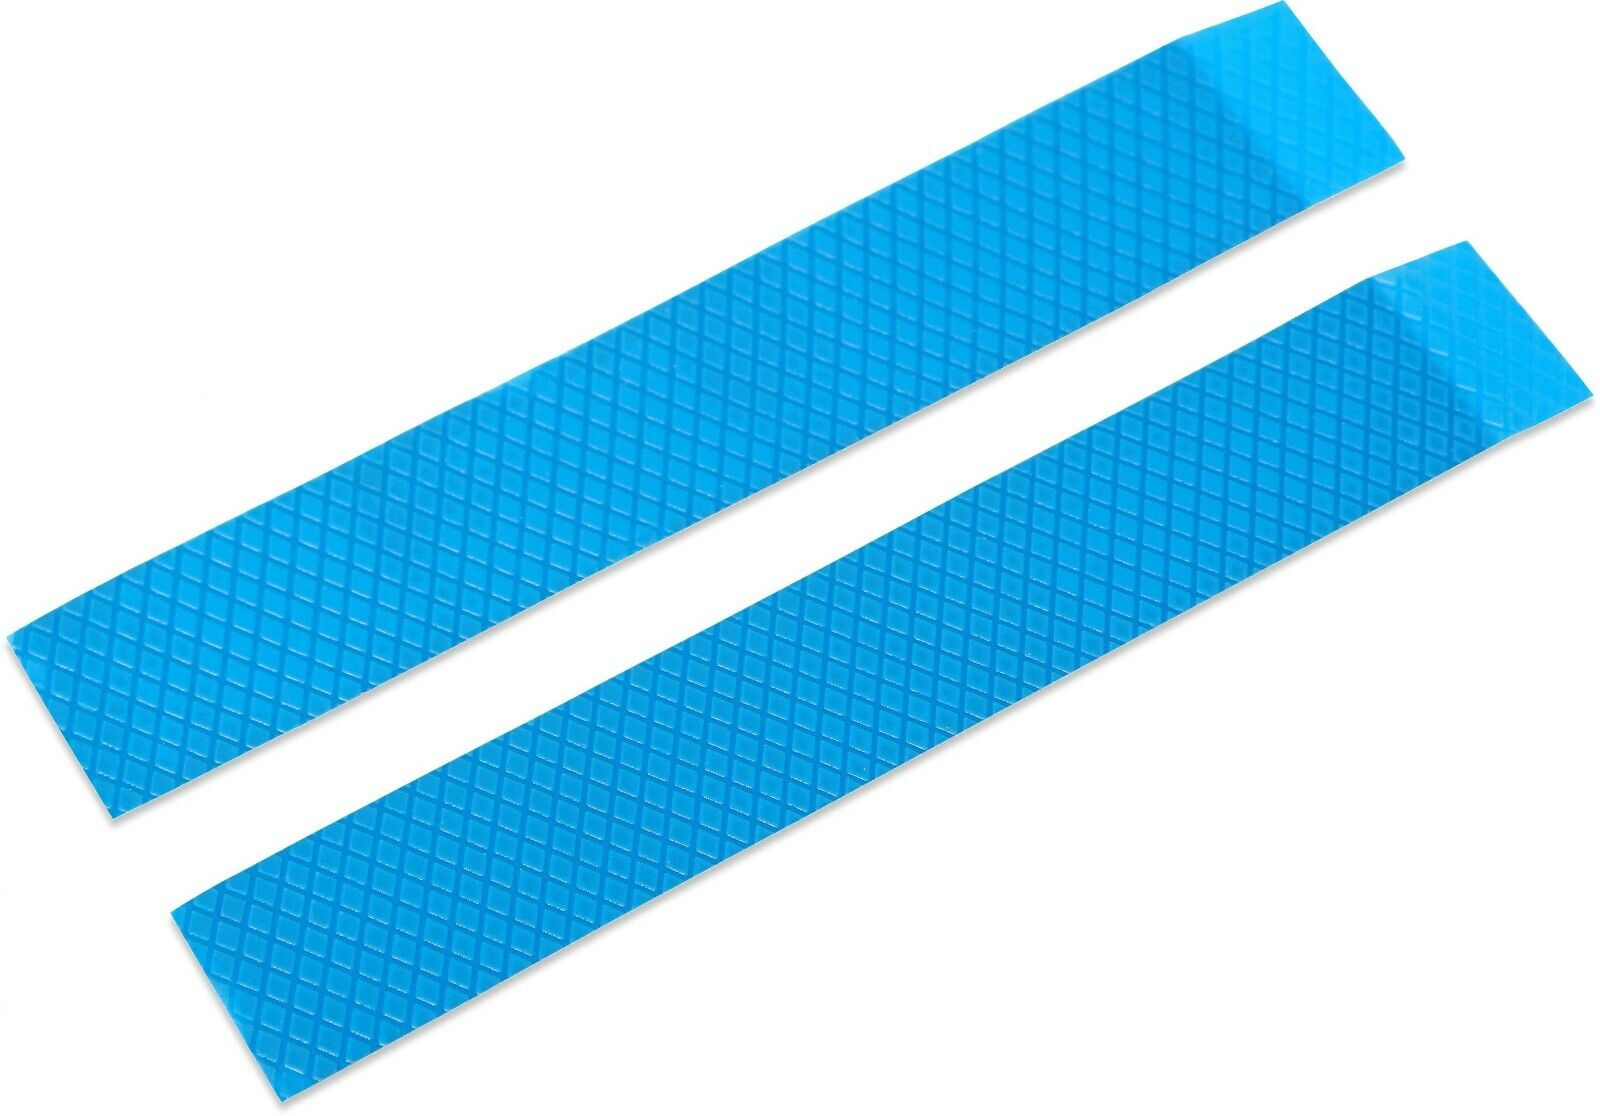 2 x Pack of Gelid Solutions GP Ultimate 0.5mm Thermal Pad (120 x 20 x 0.5 mm)